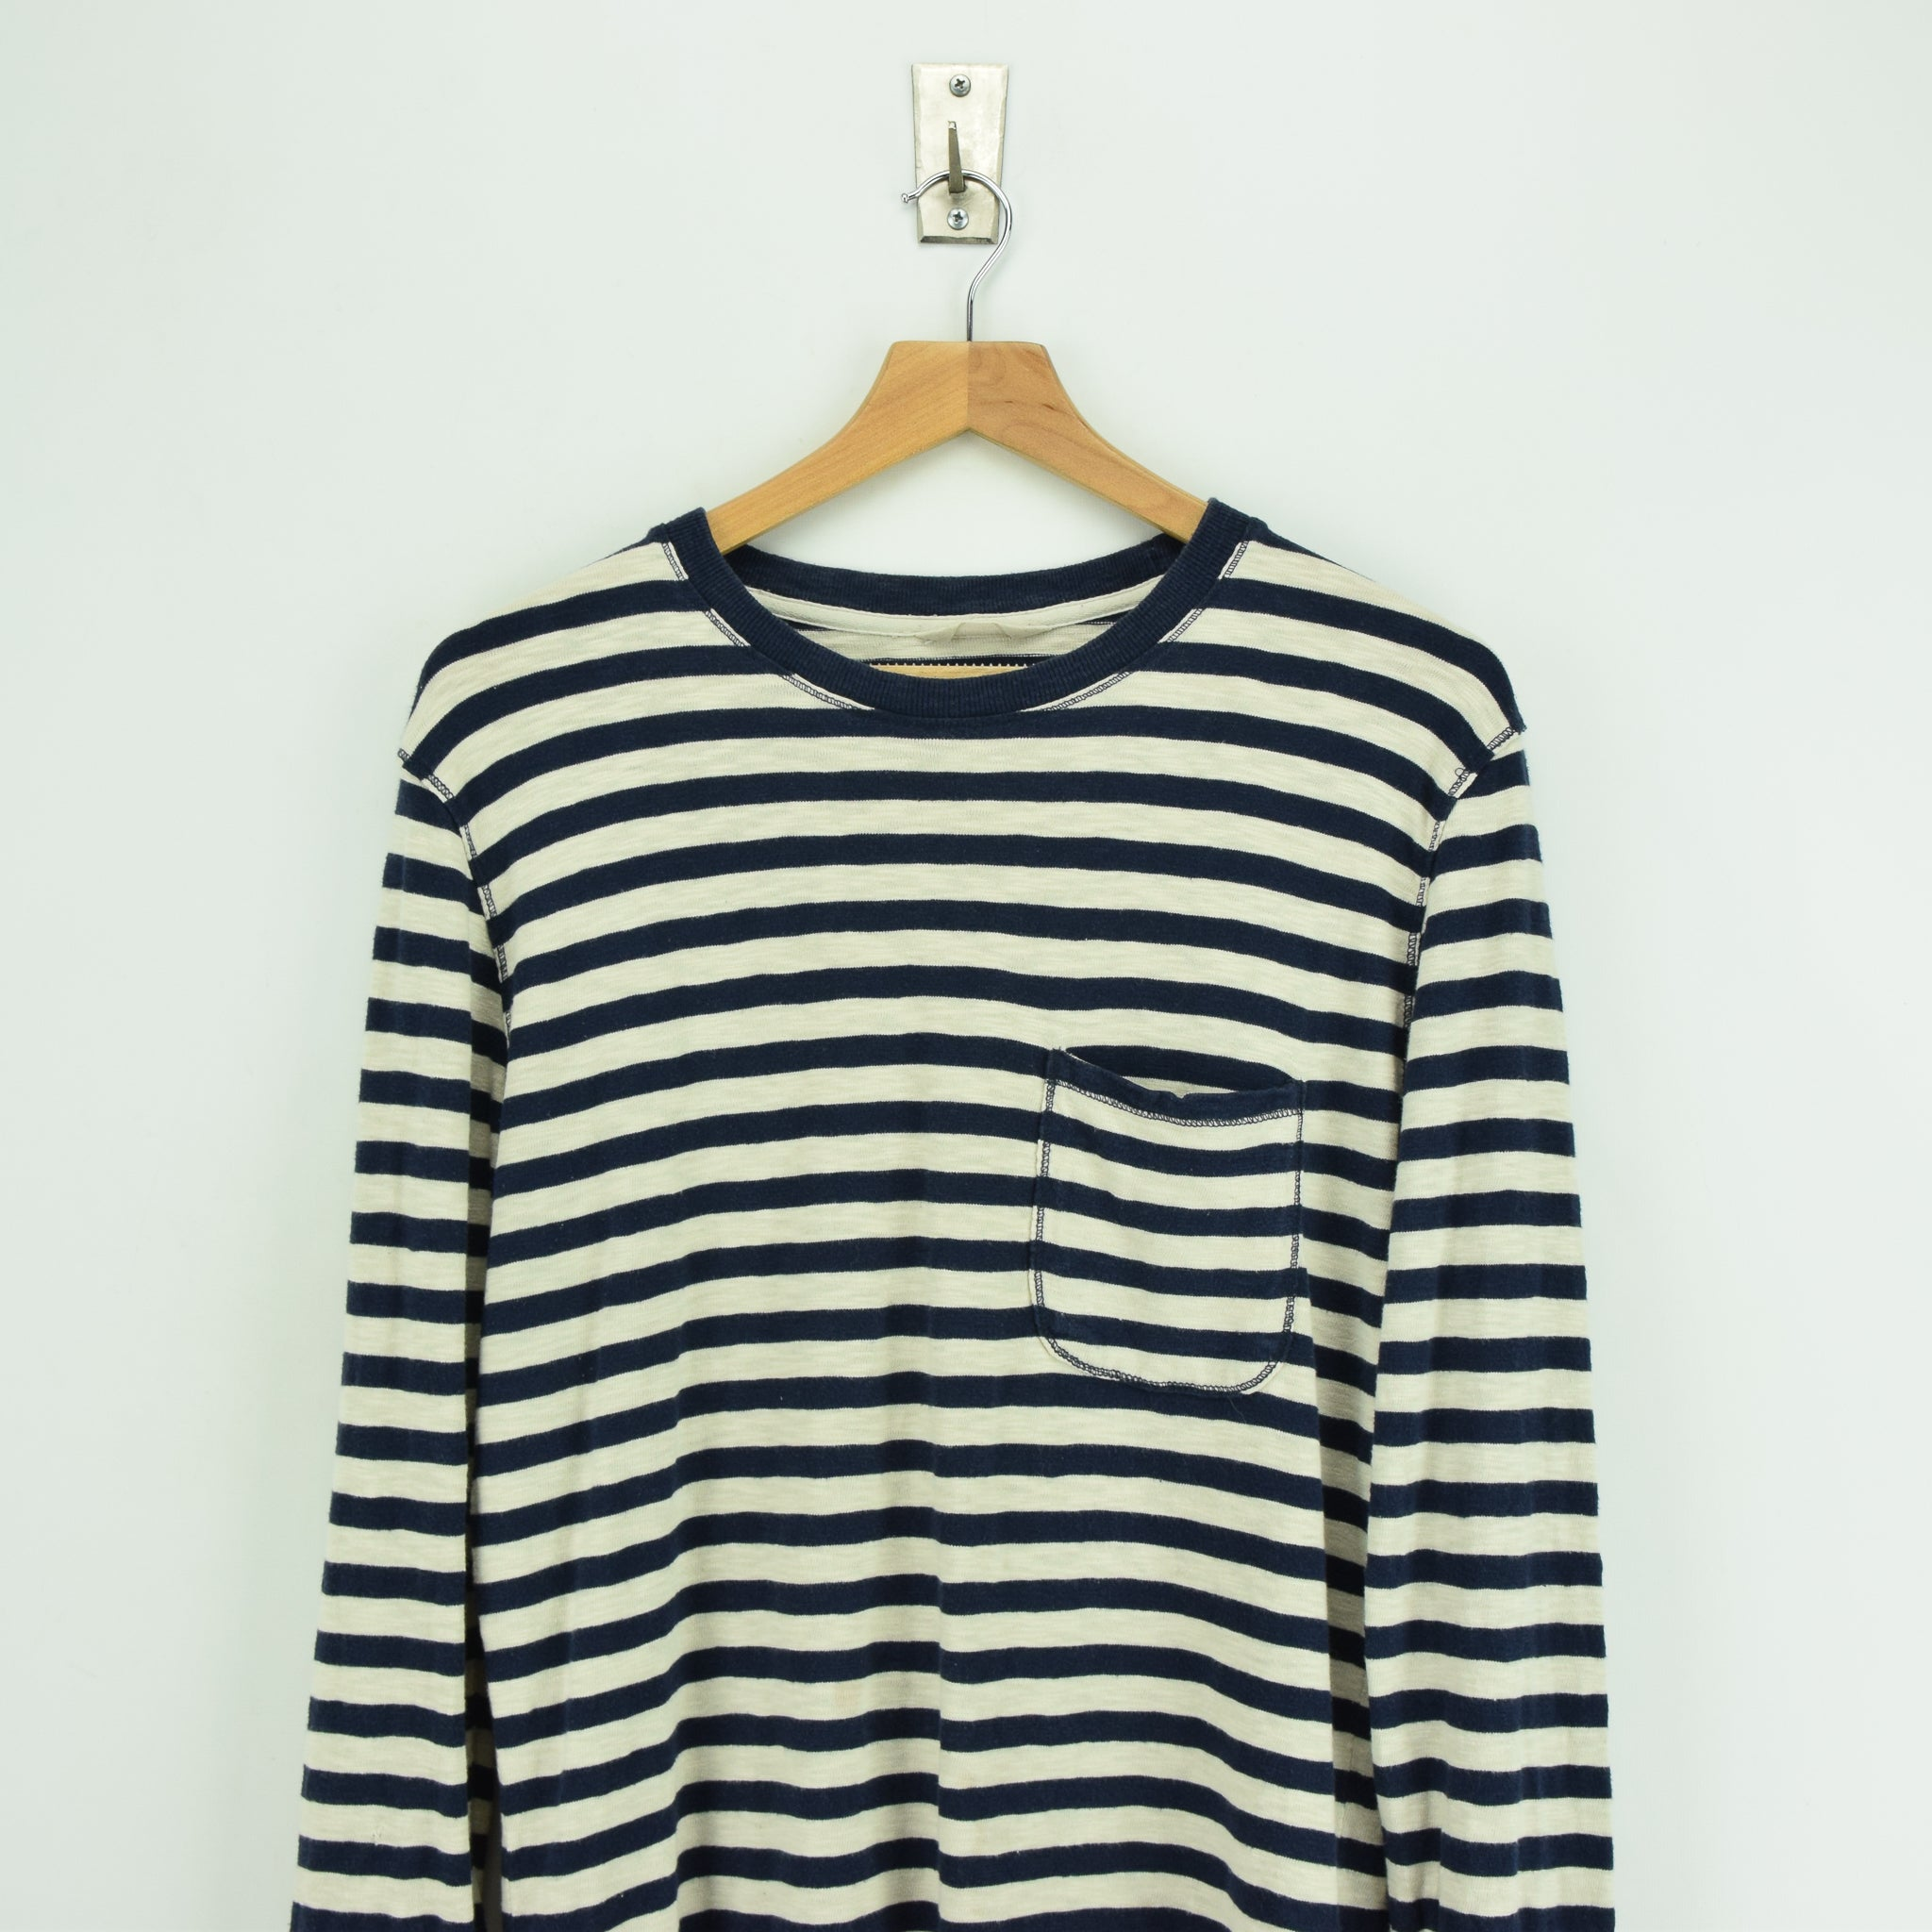 Vintage NN 07 Breton Striped Sailor's Long Sleeved Cotton T-shirt Top S / M chest